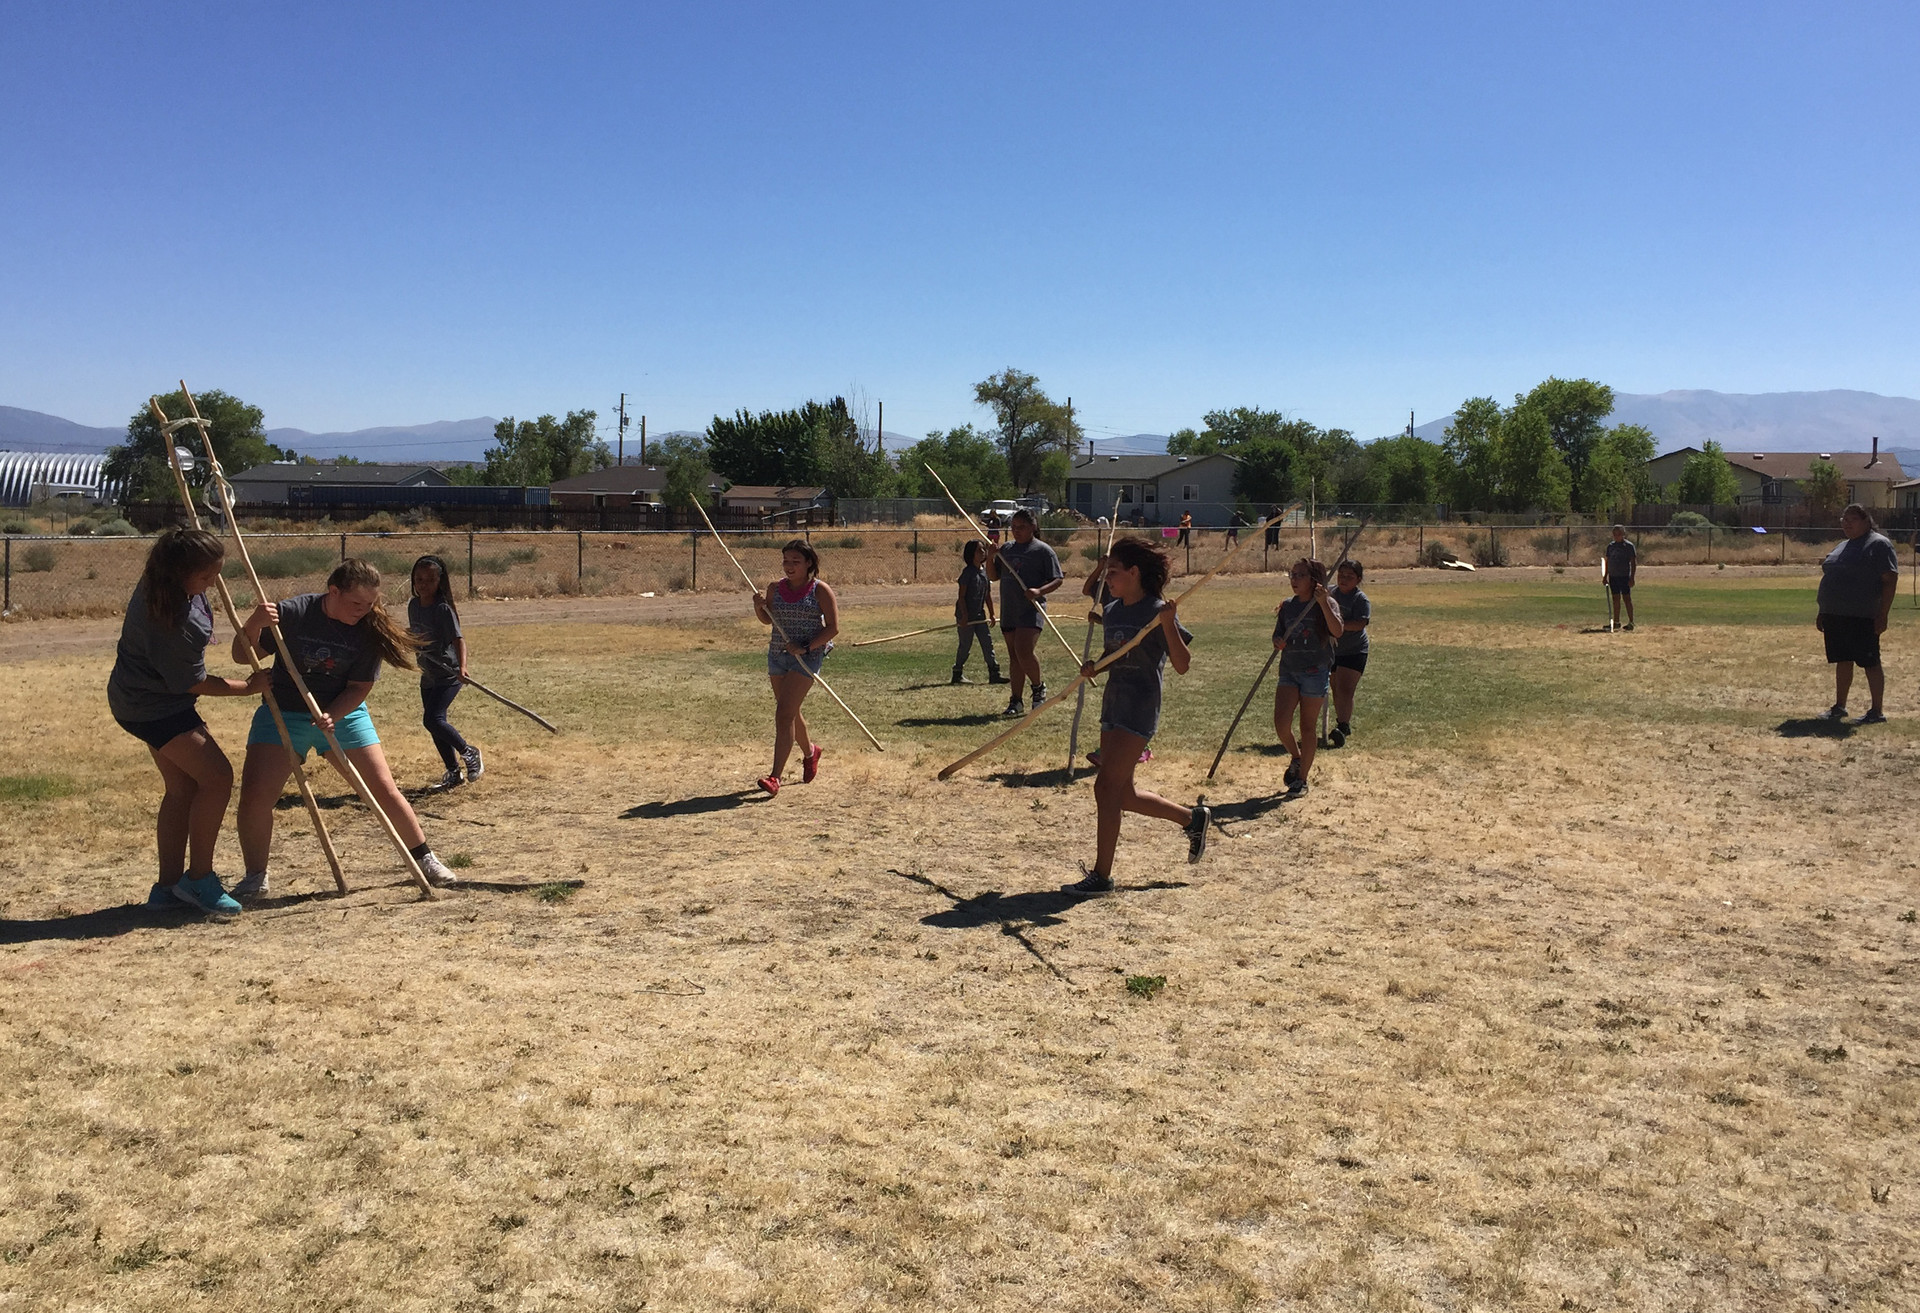 Young Washoe women play the game Sigayuk. They battle for control of a short rope with their aspen tree trunks, hoping to score a goal.